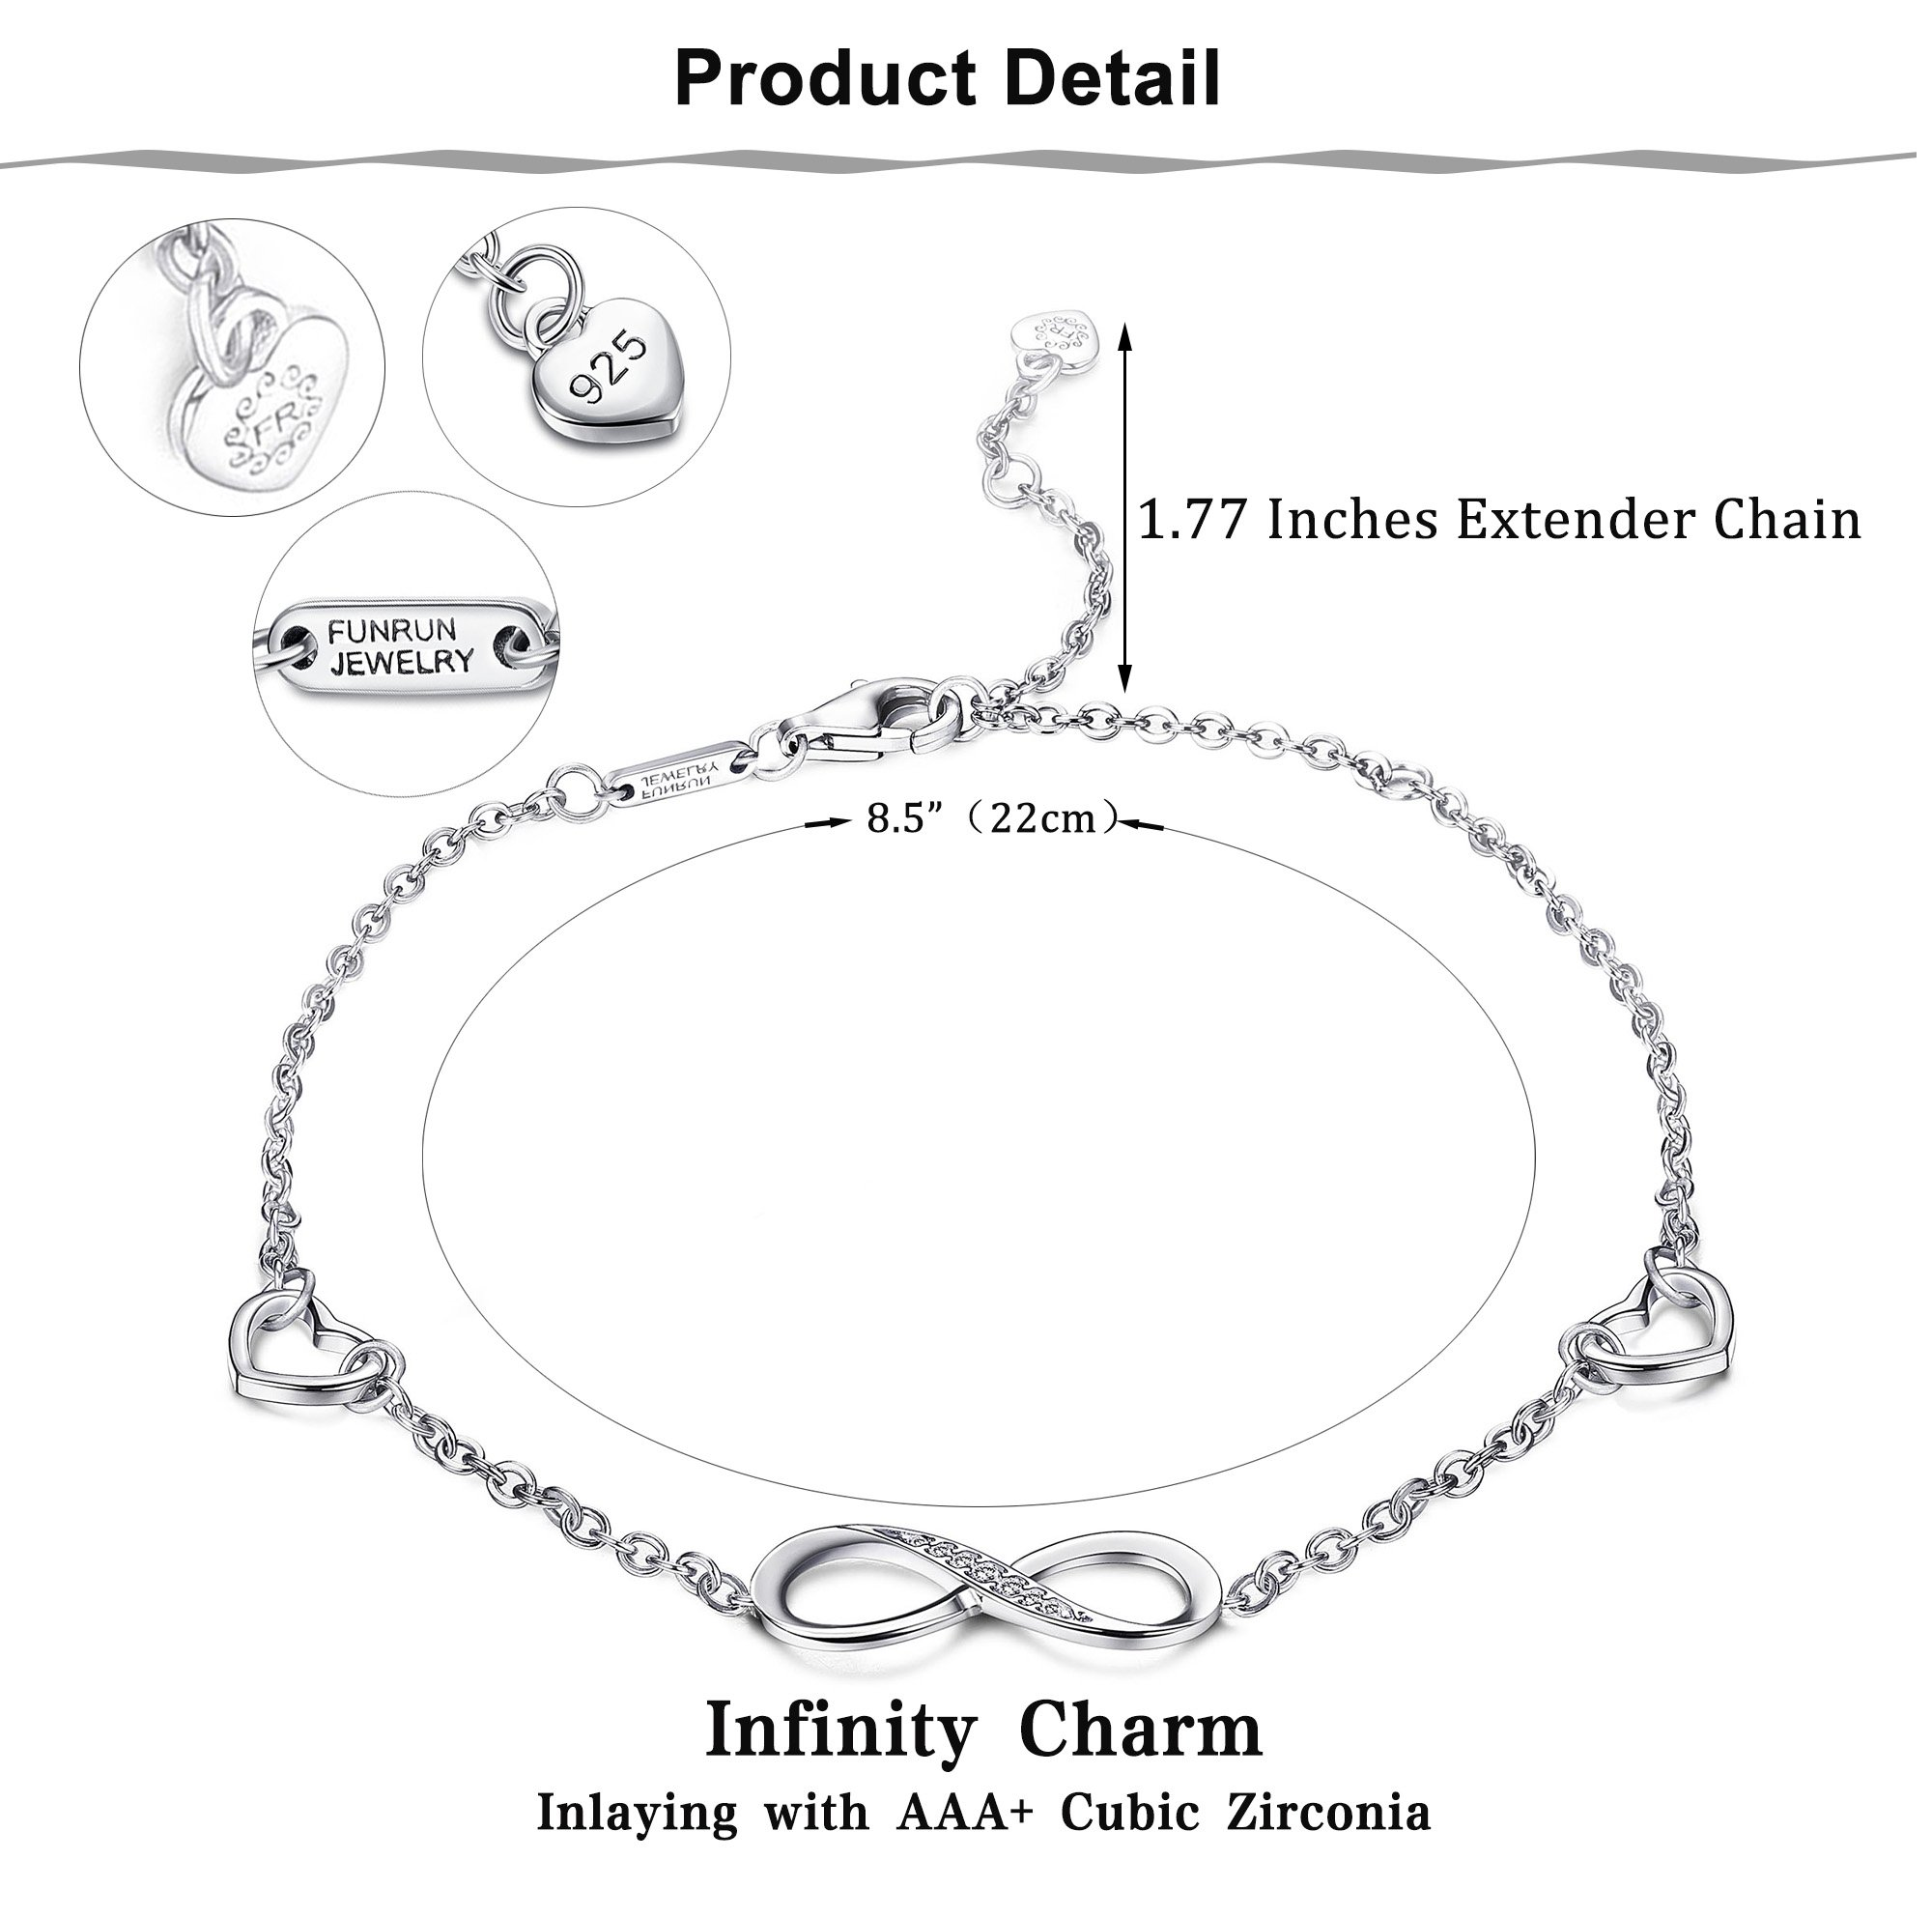 FUNRUN JEWELRY 925 Sterling Silver Infinity Bracelets and Anklet Bracelets for Women Girls 4-Level Adjustable Length Gift for Mother's Day (Anklet) by FUNRUN JEWELRY (Image #2)